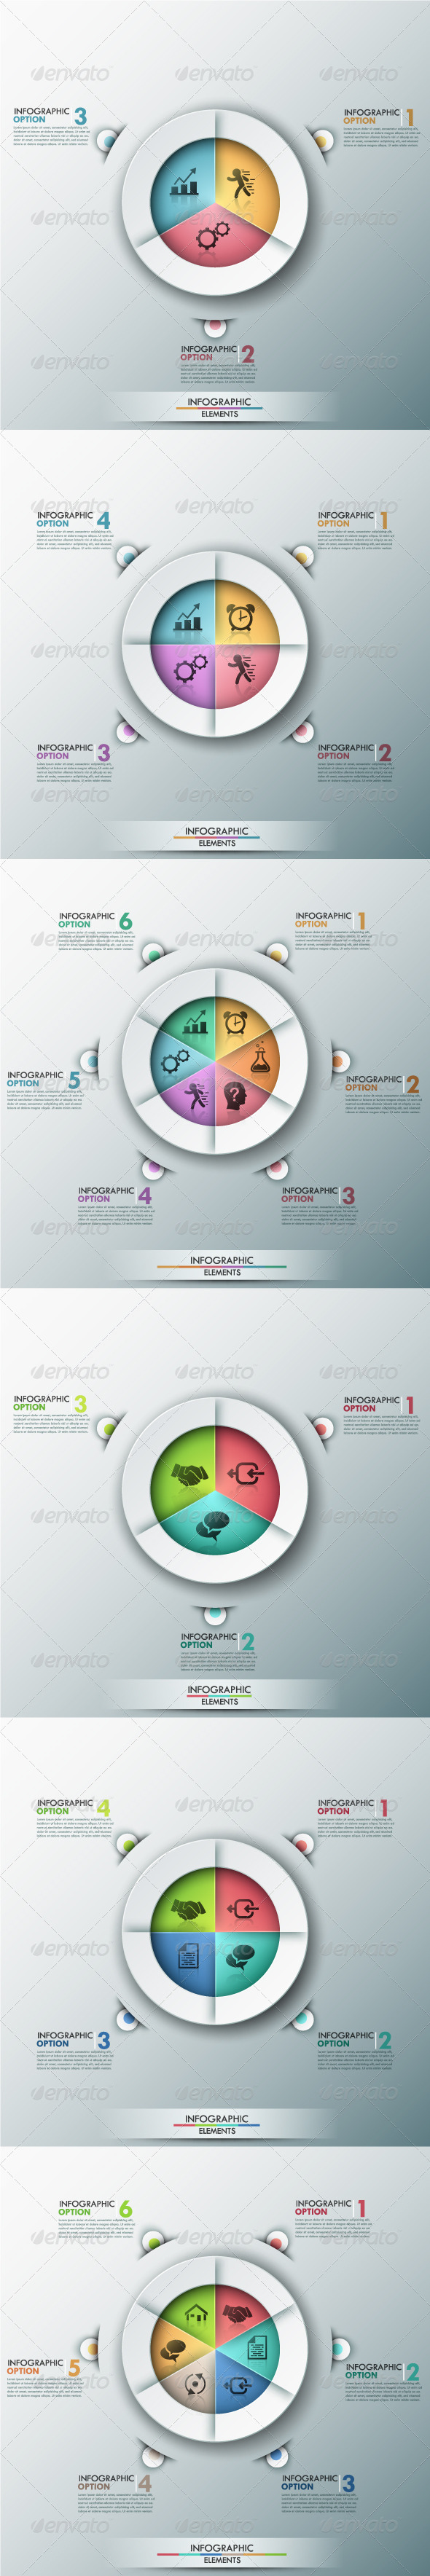 GraphicRiver Modern Infographic Banner With Pie Chart 6 Items 8659161